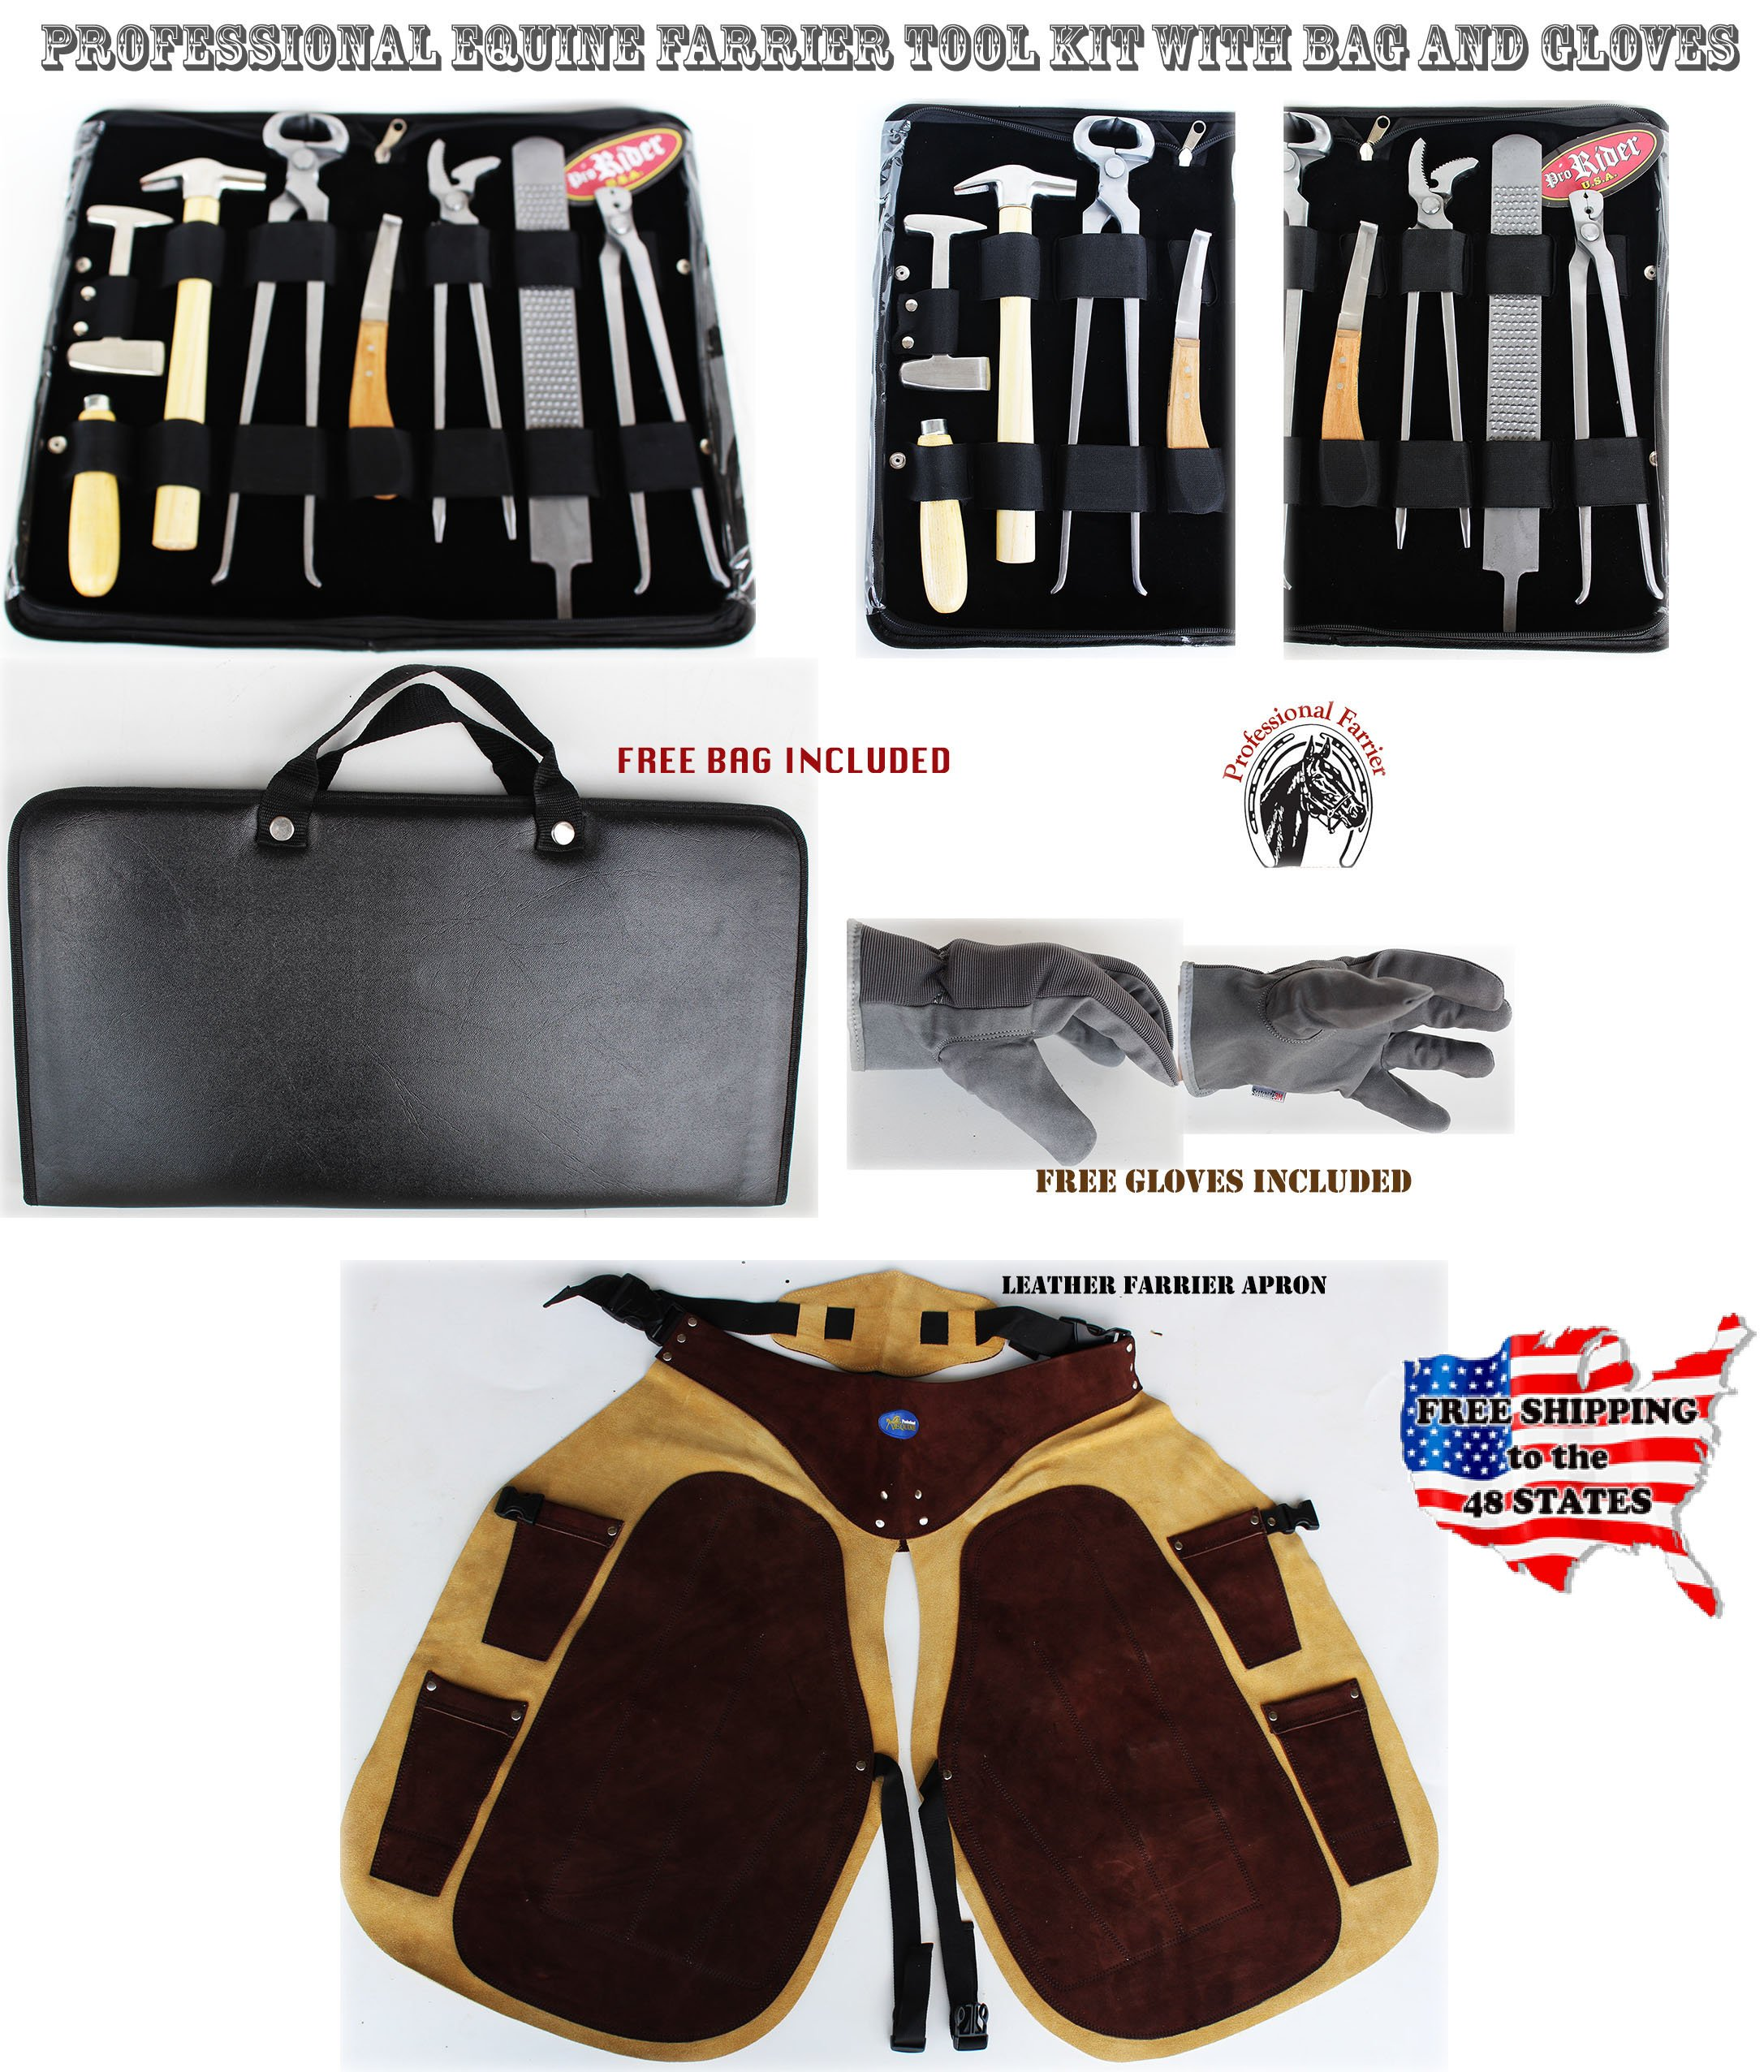 ProRider USA Horse Farrier Tool Equine Care Tool Kit Hoof Nipper Knife Gloves Apron 98498 by ProRider USA